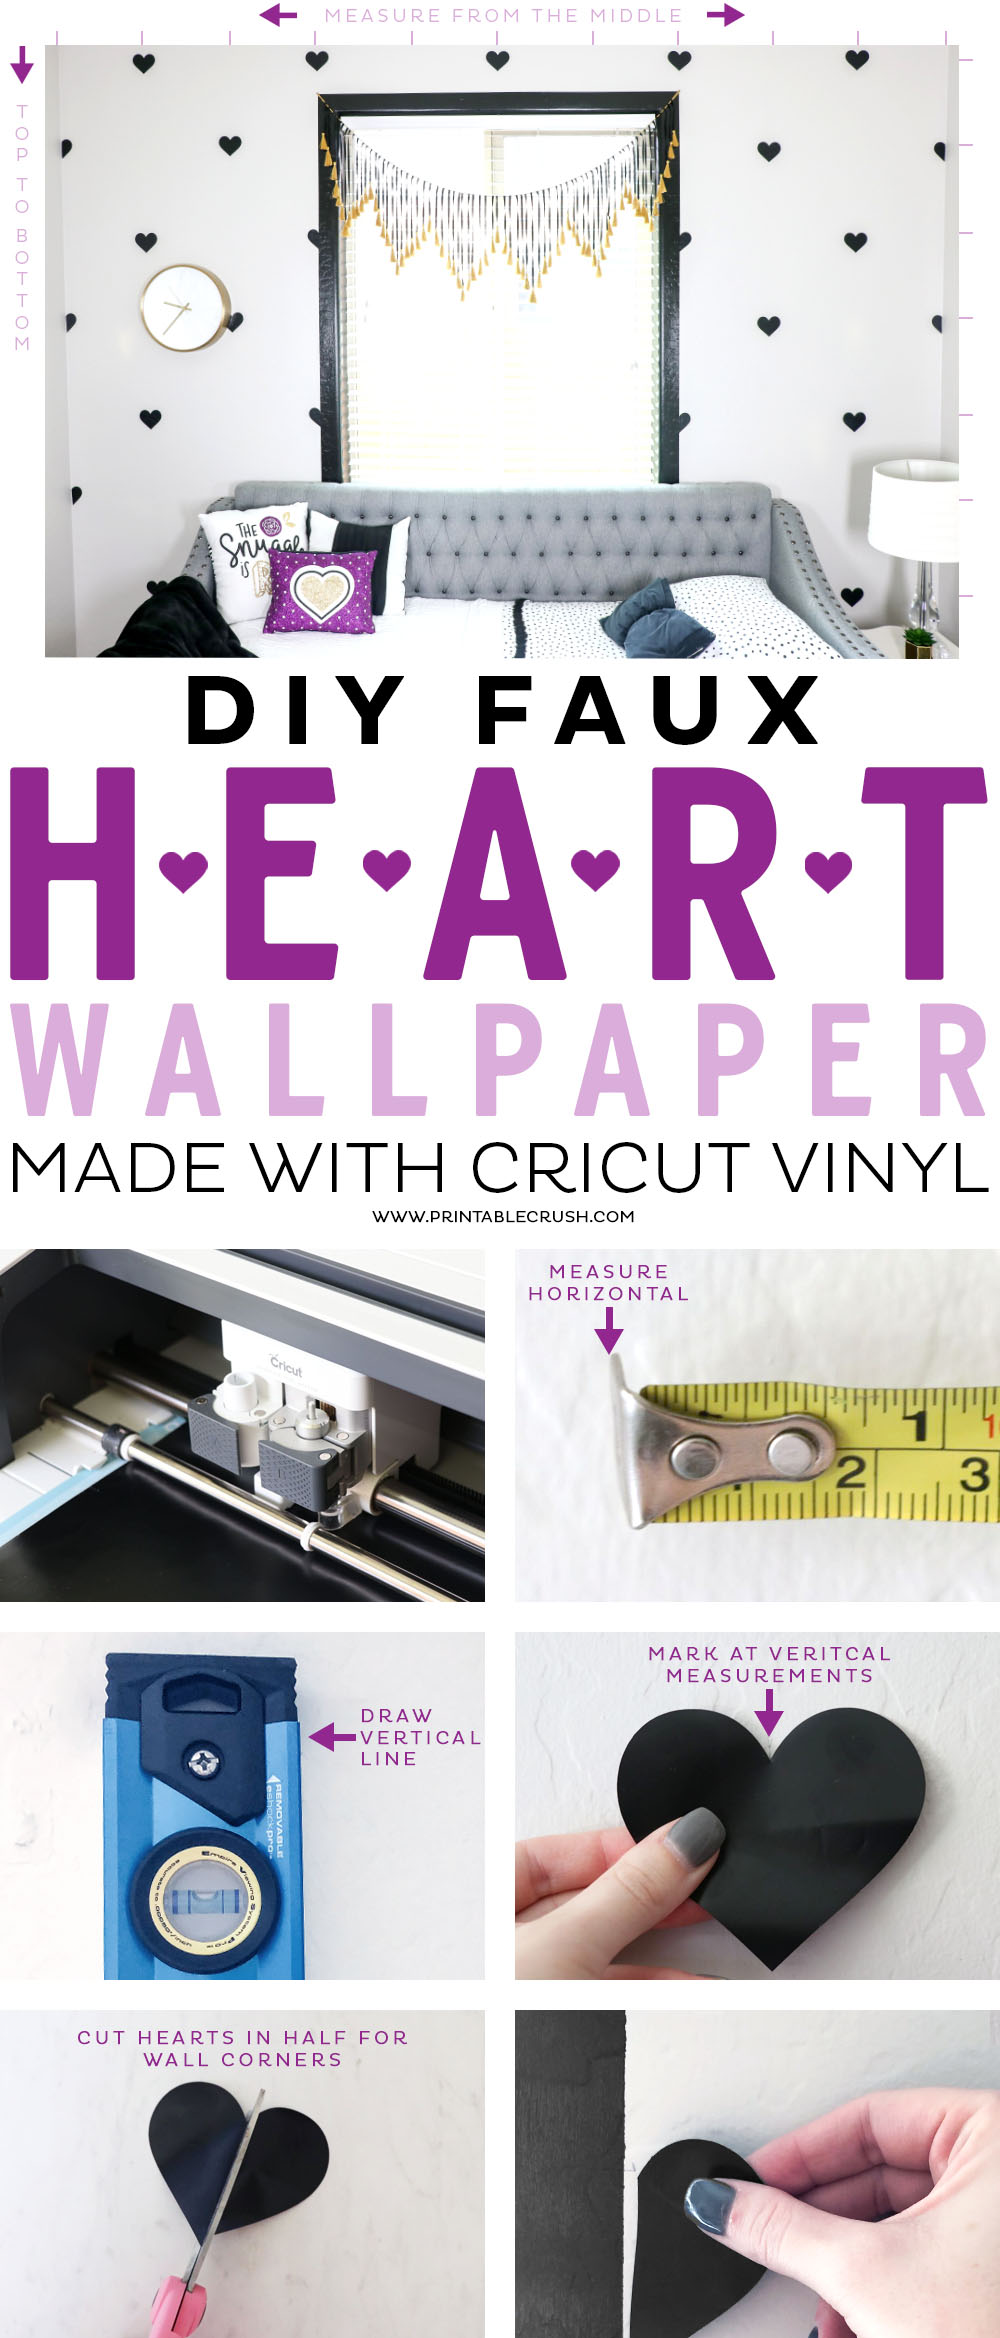 This DIY Faux Heart Wallpaper tutorial made with Cricut Vinyl is SO much easier and less expensive than real wallpaper!